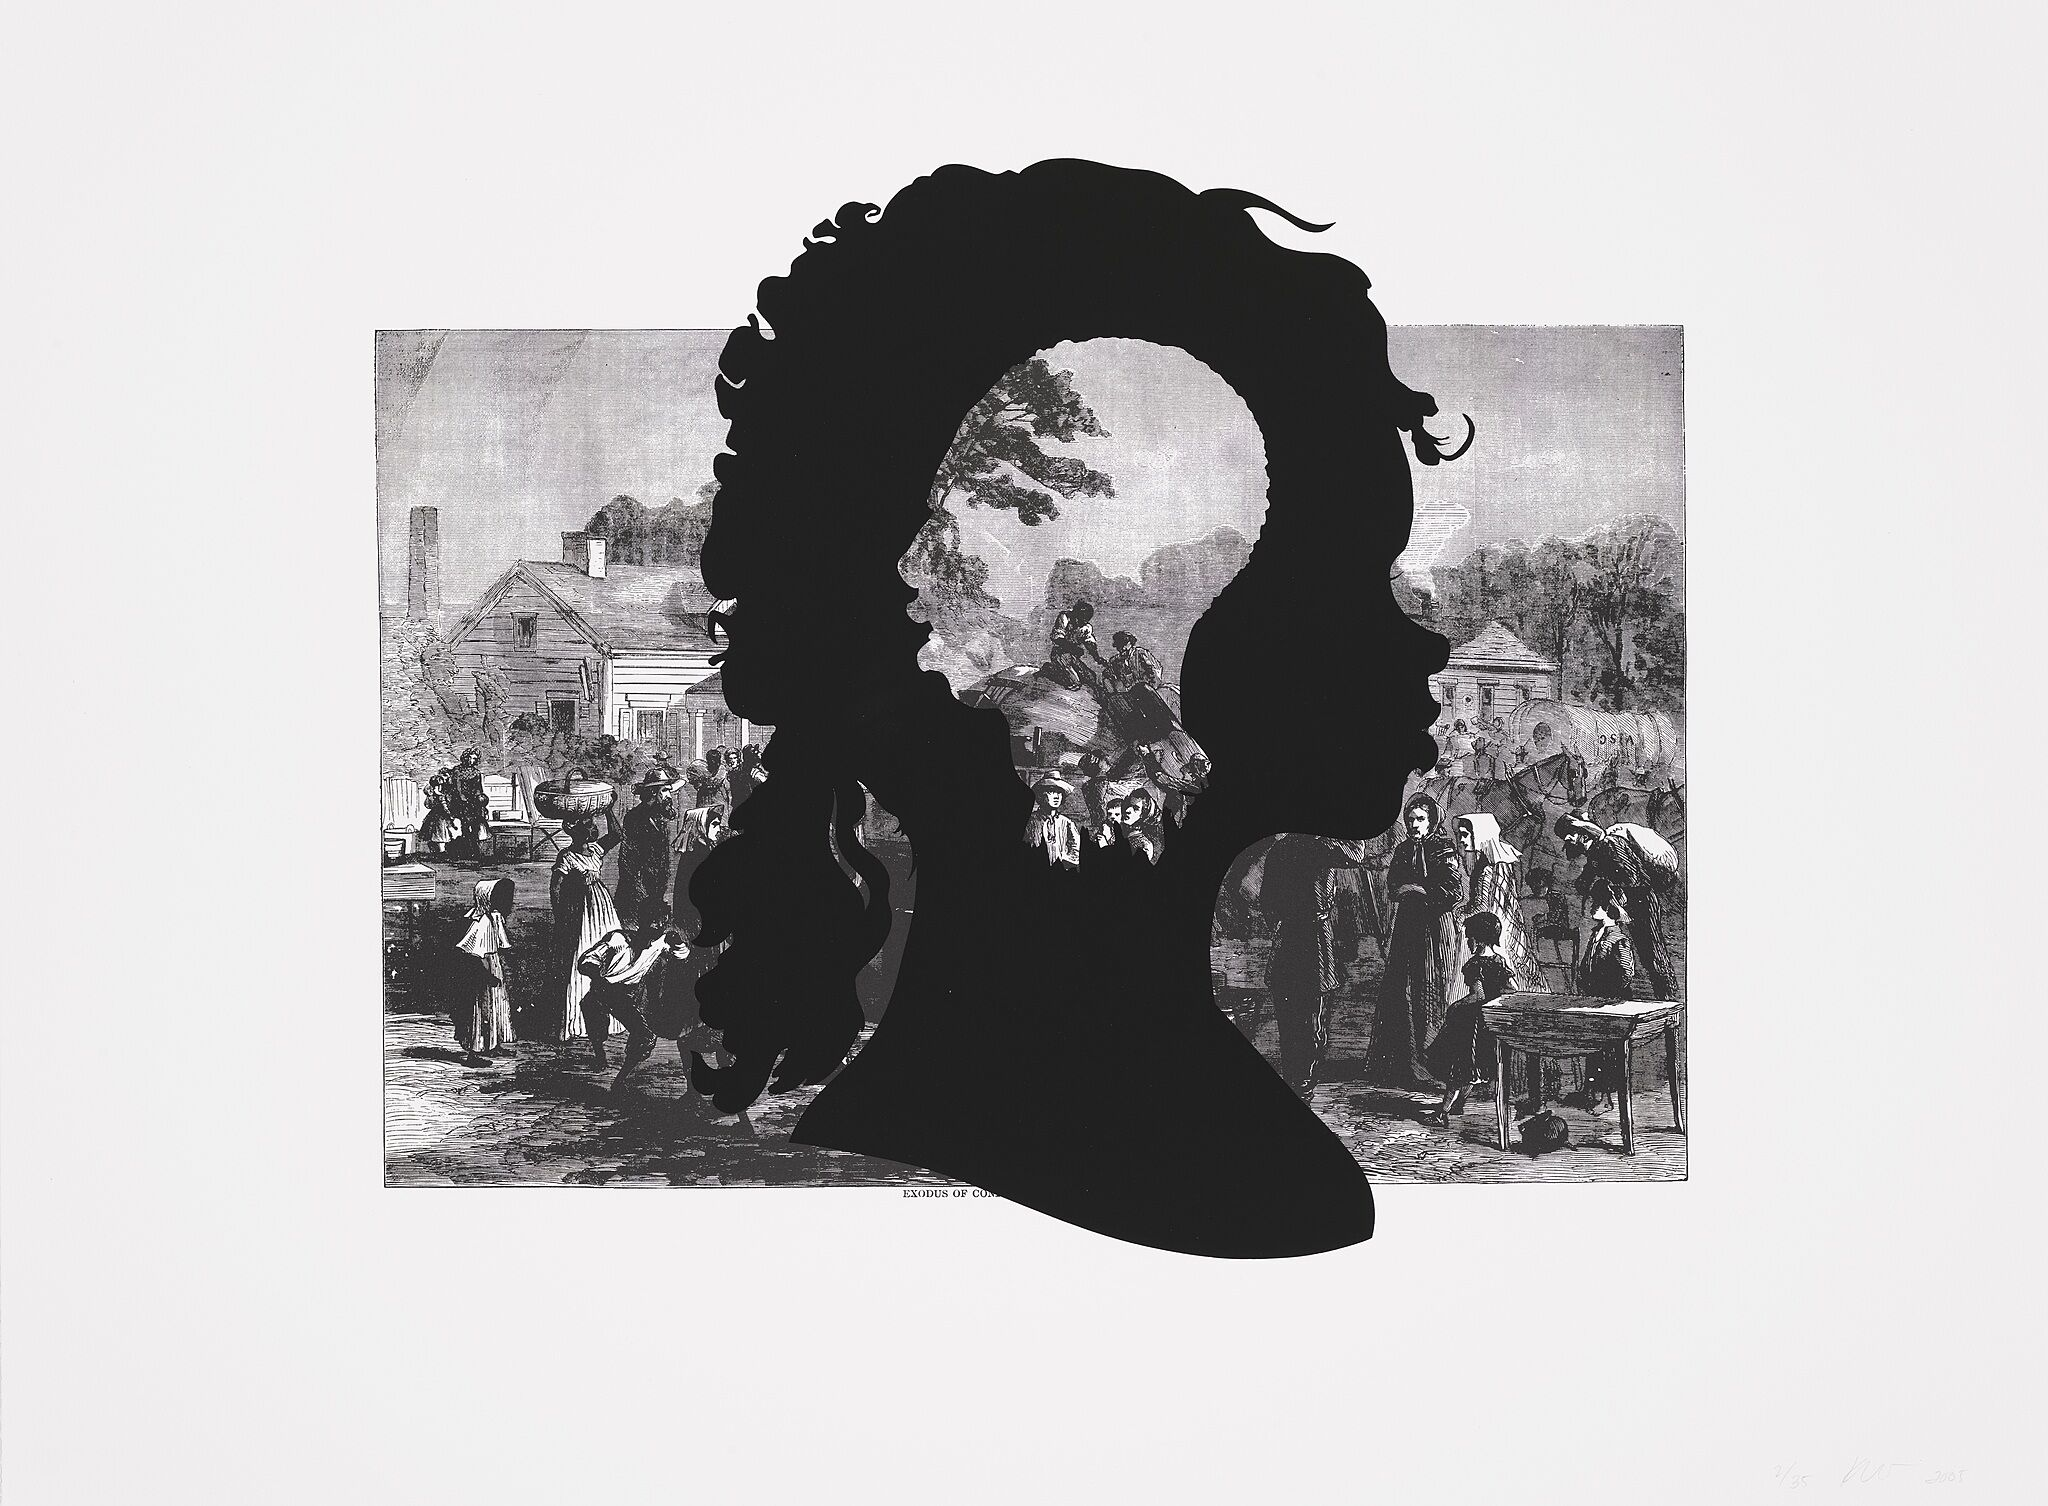 Silhouette cutout of a woman's face over a print.